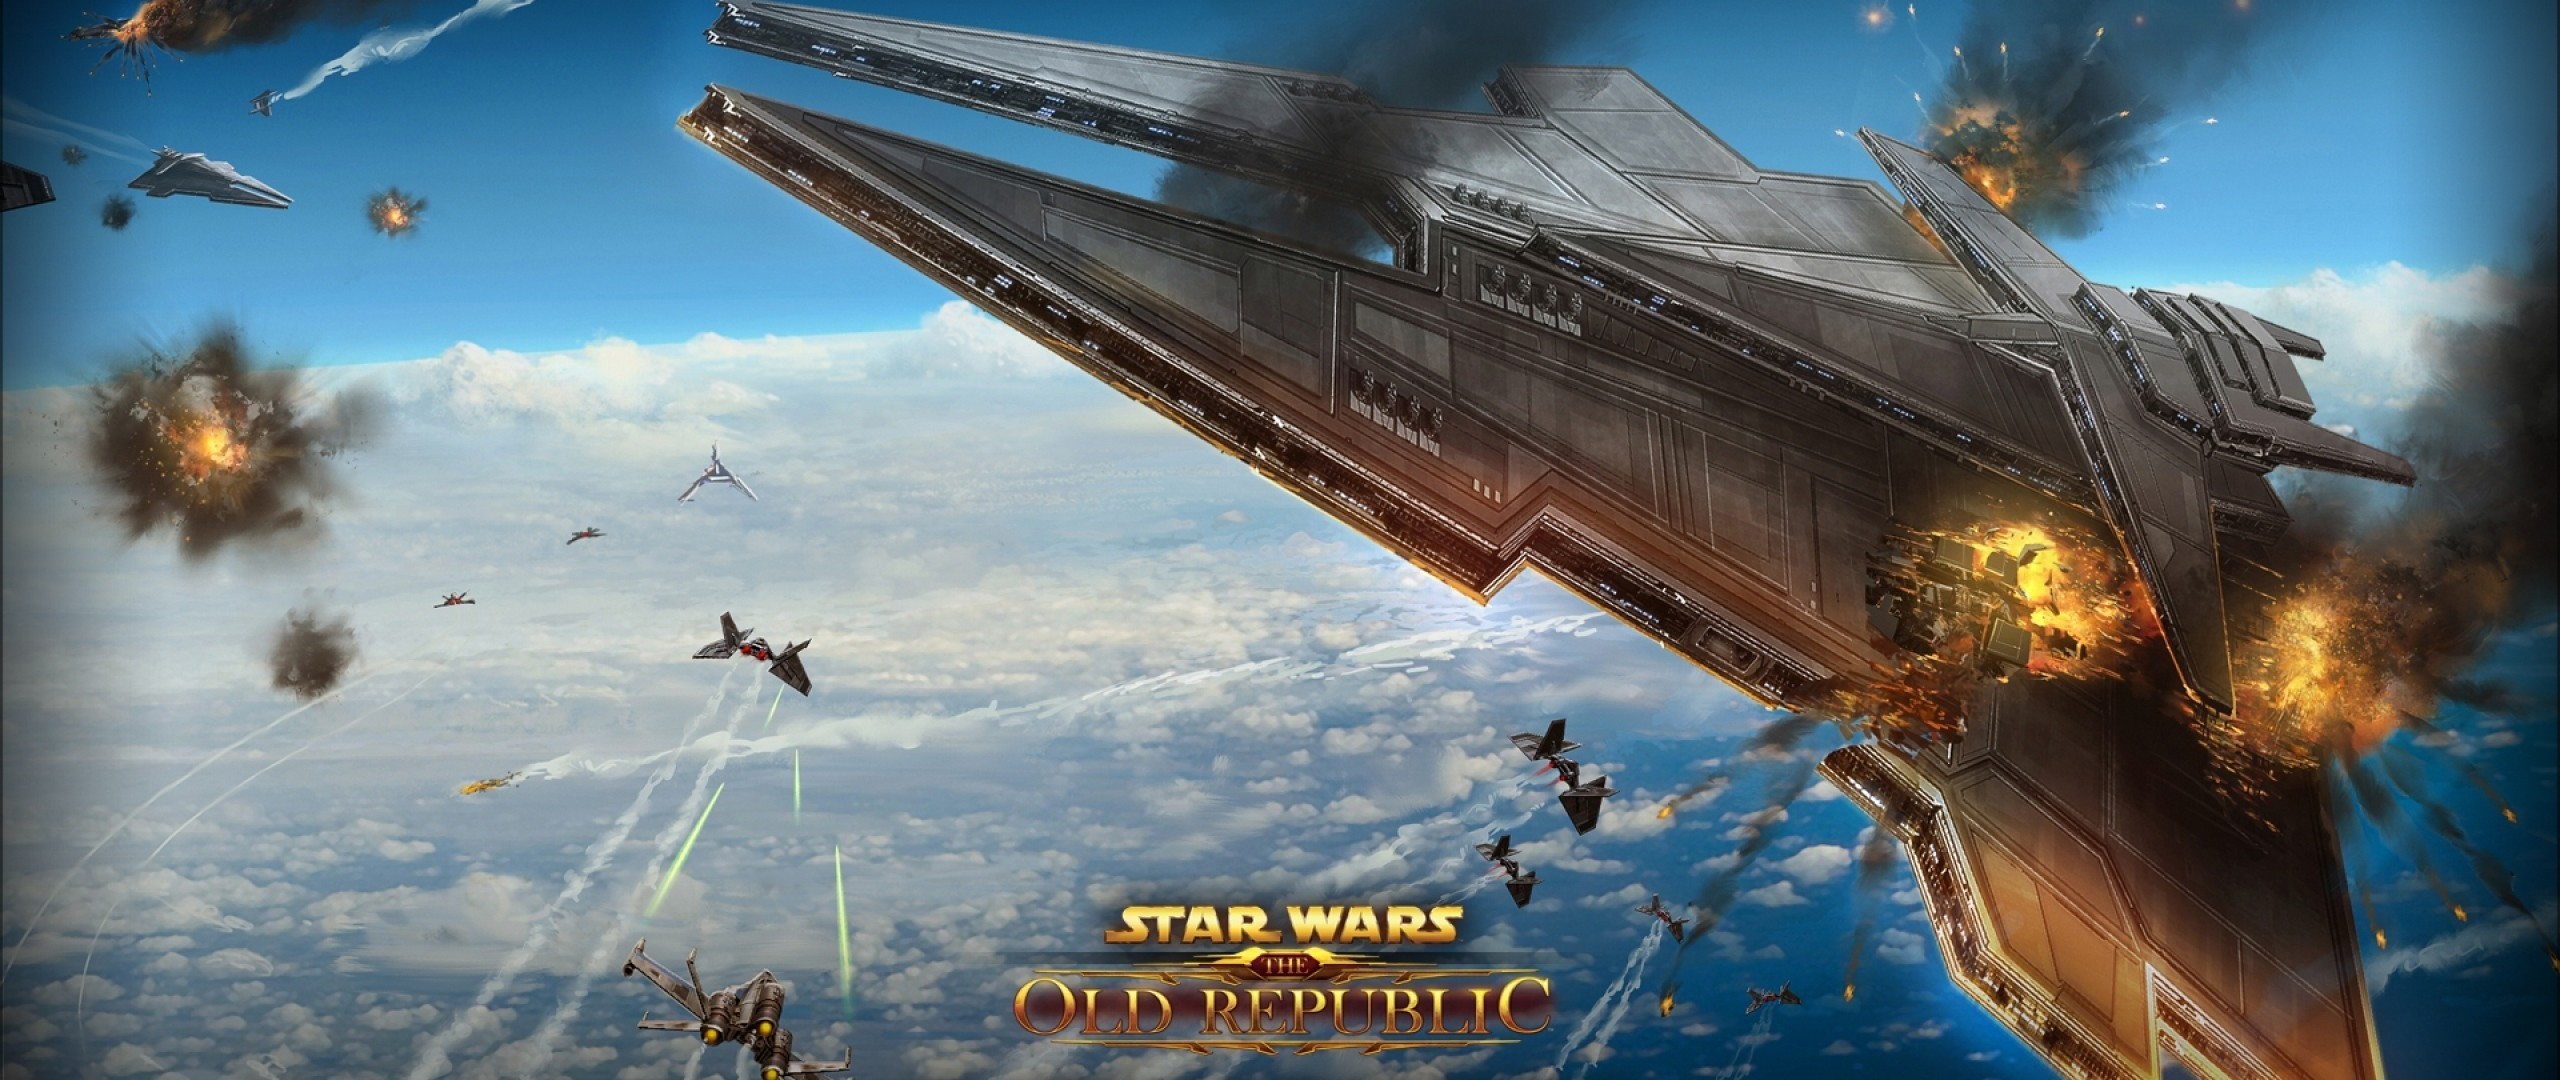 2560x1080  Wallpaper star wars the old republic, airships, battle,  explosion, planet